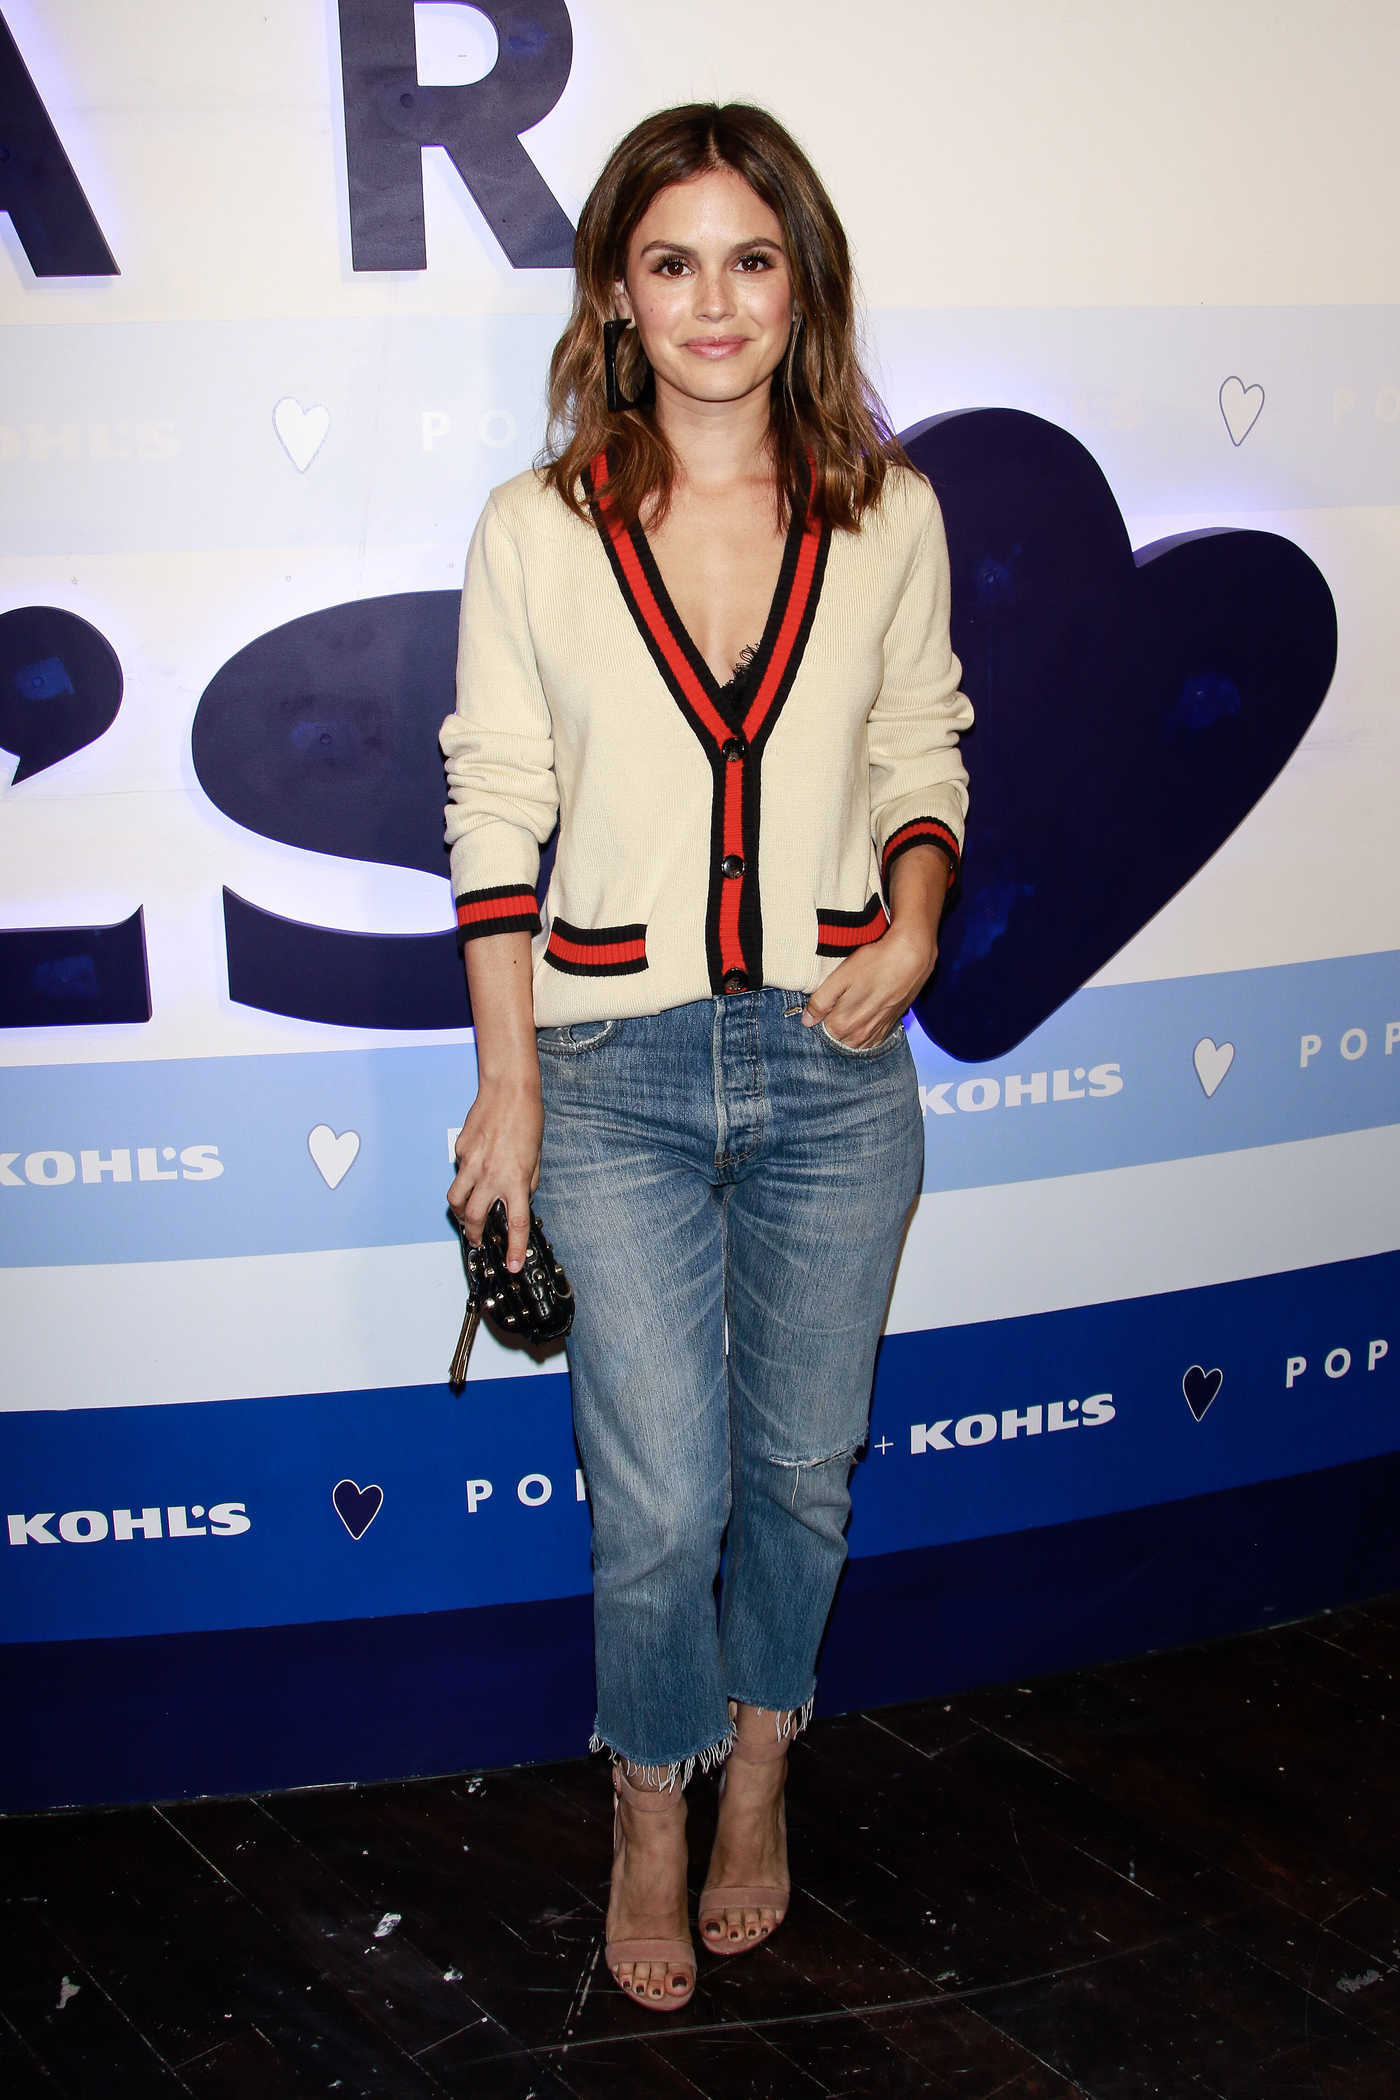 Rachel Bilson Attends the Kohl's Collection Launch Party in New York 09/12/2018